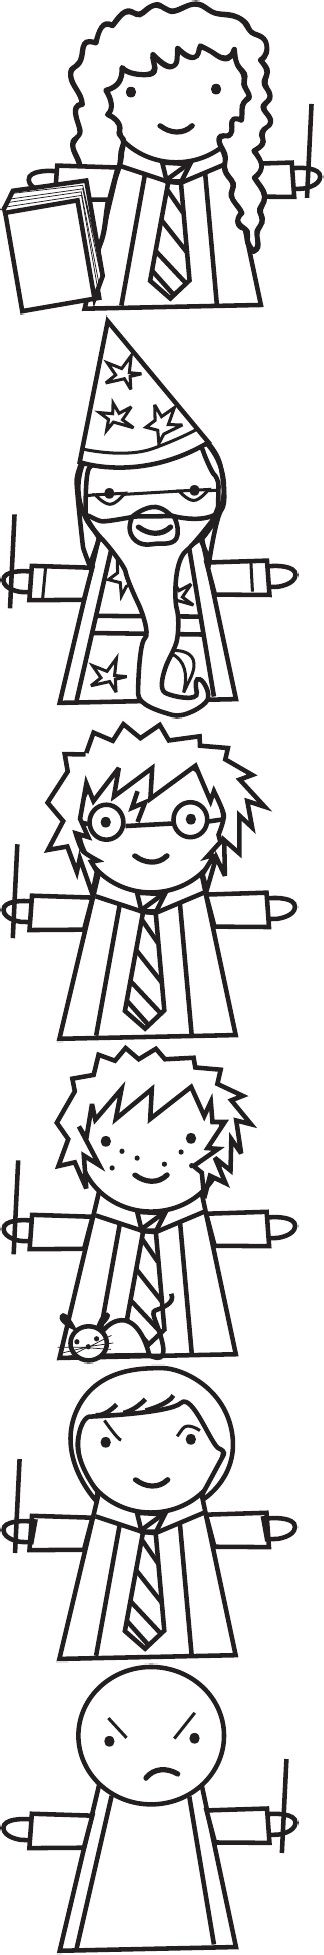 Harry Potter: The Boy-Who-Lived-To-Be-Made-Into-A-Finger-Puppet. They were meant to be Harry Potter finger puppet patterns but I think they're great Harry Potter coloring pages, LOL. The captions are funny. #puppets #harrypotter